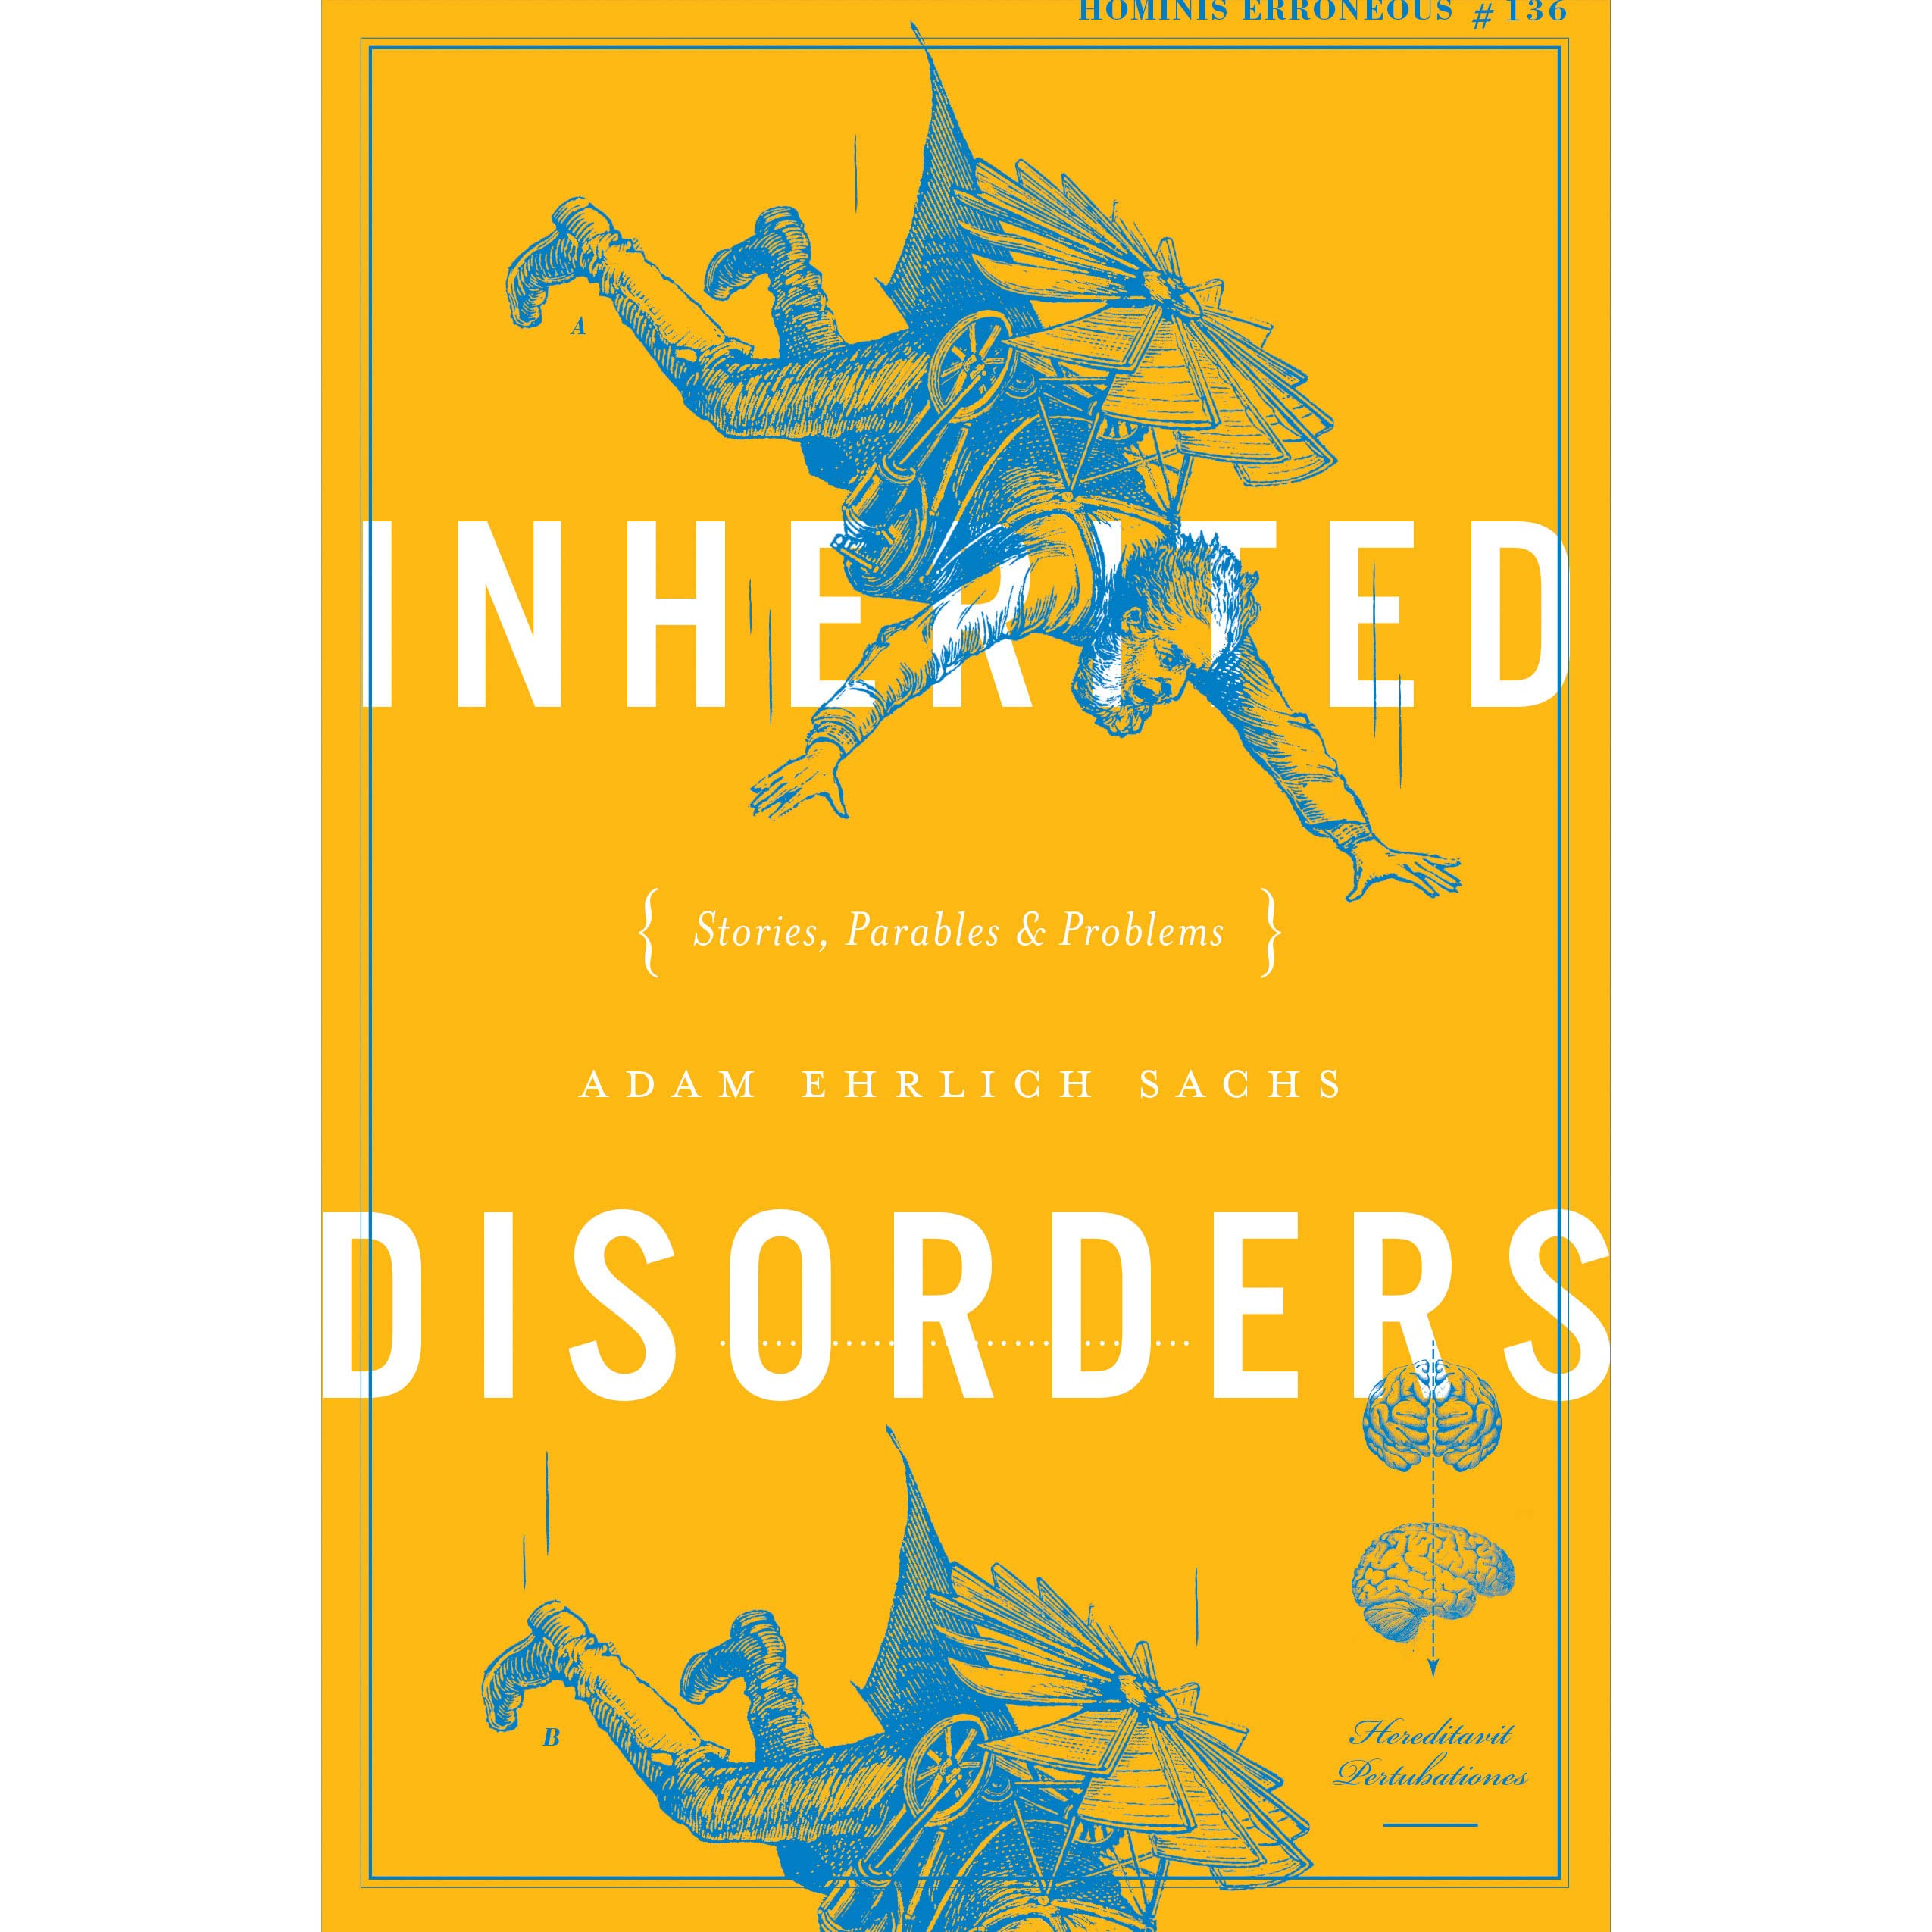 inherited disorders stories parables problems by adam ehrlich sachs